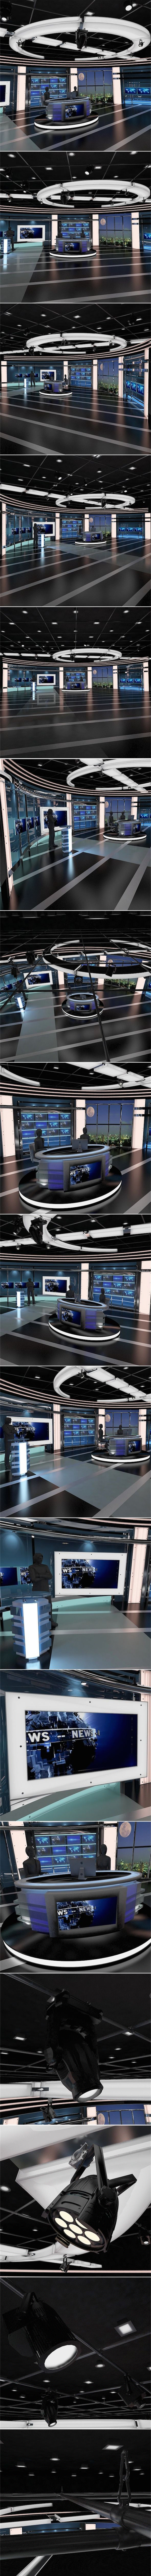 3D Model Store.  Virtual TV Studio Sets.   Professional 3D models ready to be used in CG projects, film and video production, animation, visualizations, games, VR/AR, and others. Assets are available for download in many industry-accepted formats including MAX, OBJ, FBX, 3DS, STL, C4D, AEP, BLEND, MA, MB and other. If you're in search of quality high poly or real-time 3D assets, we have a leading digital art library for all your needs.  www.akerdesign.com